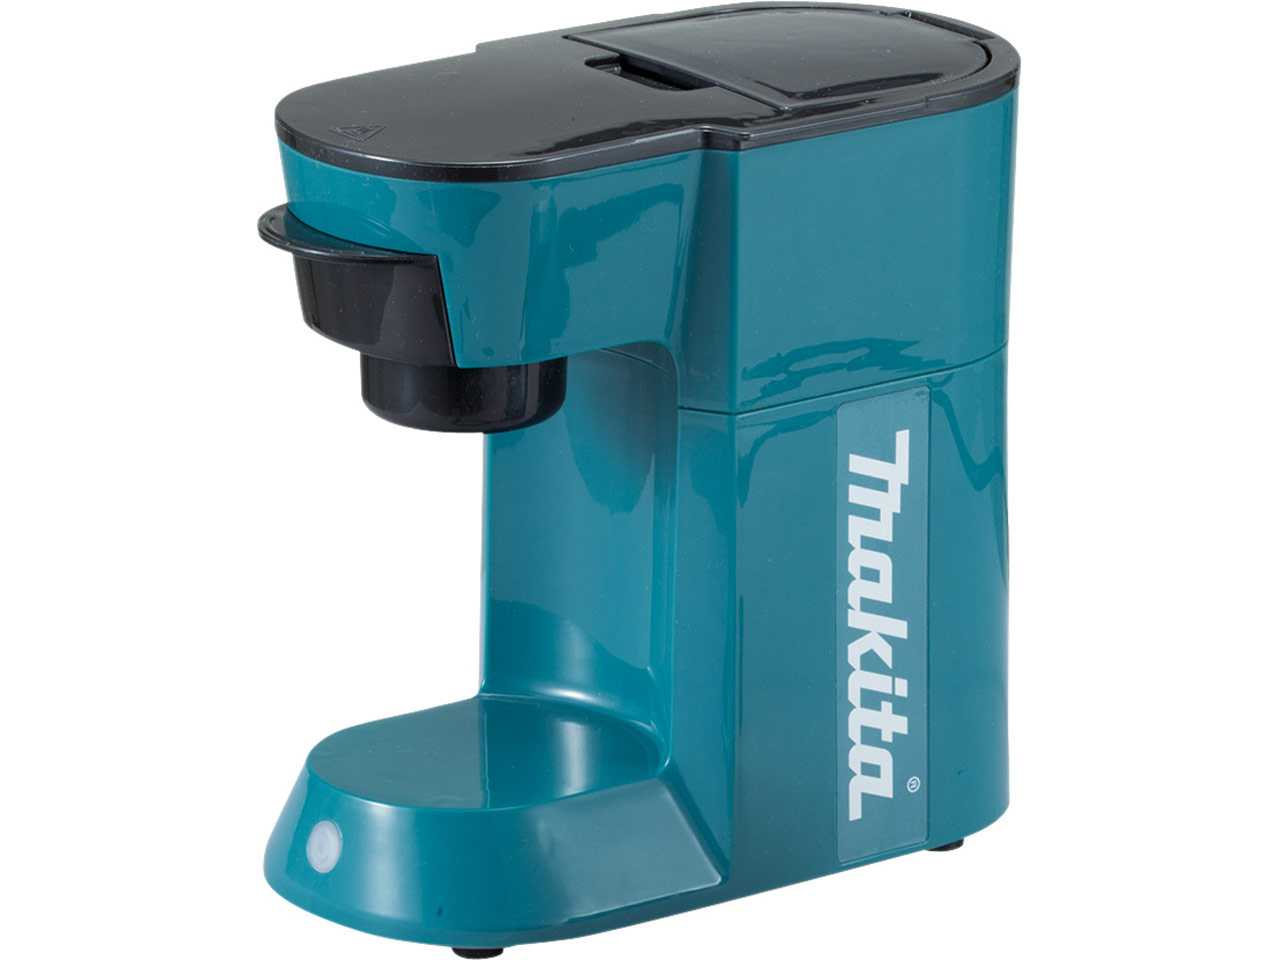 Makita Portable Coffee Maker : Makita DCM500Z 18v LXT Coffee Machine Bare Unit 88381677097 eBay